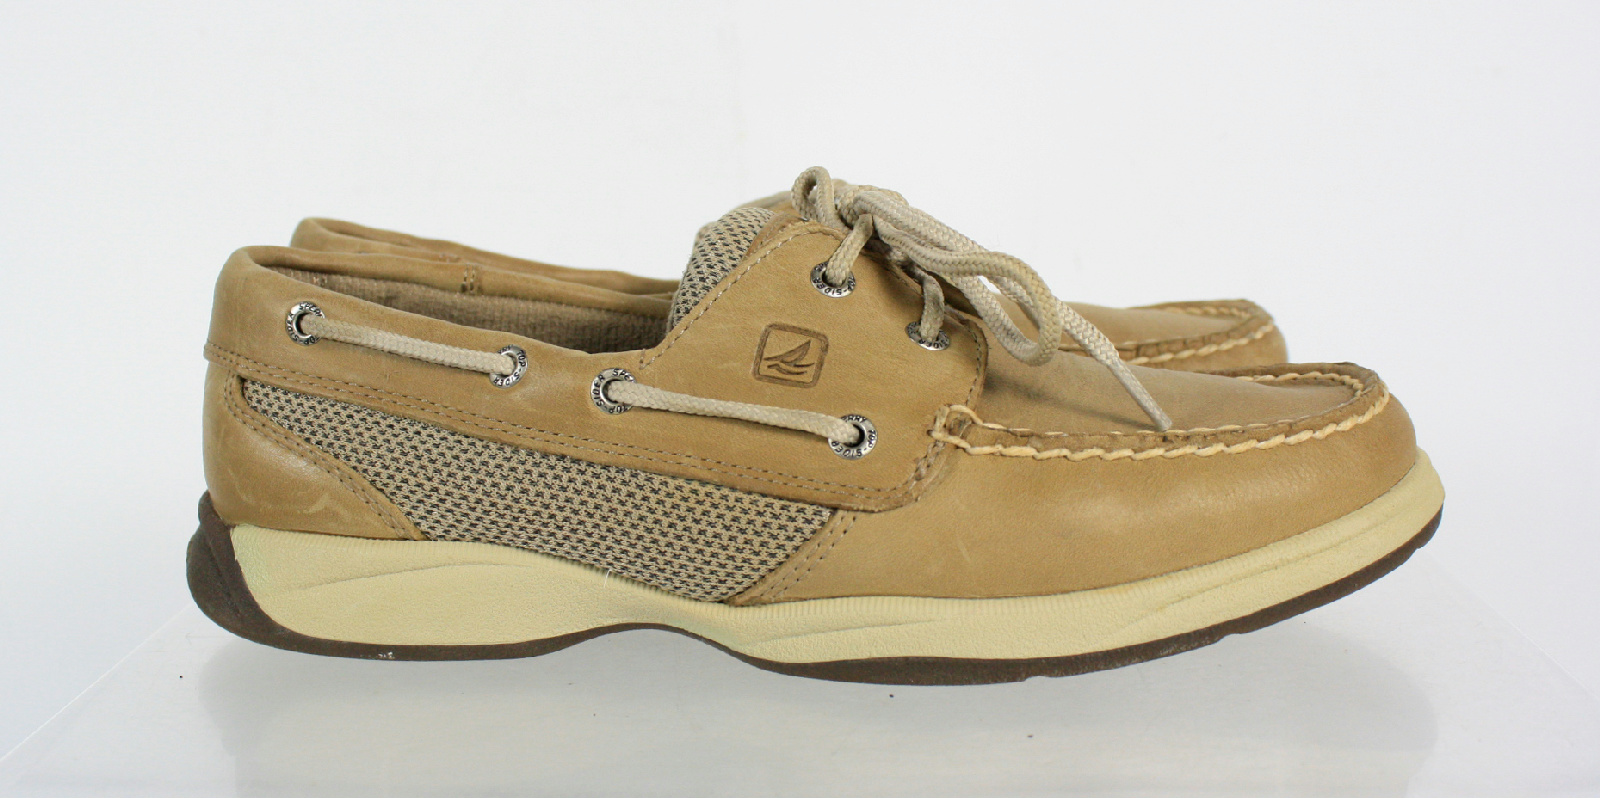 Sperry Tan Leather Lace Up Boat Shoes Size 7.5M   eBay